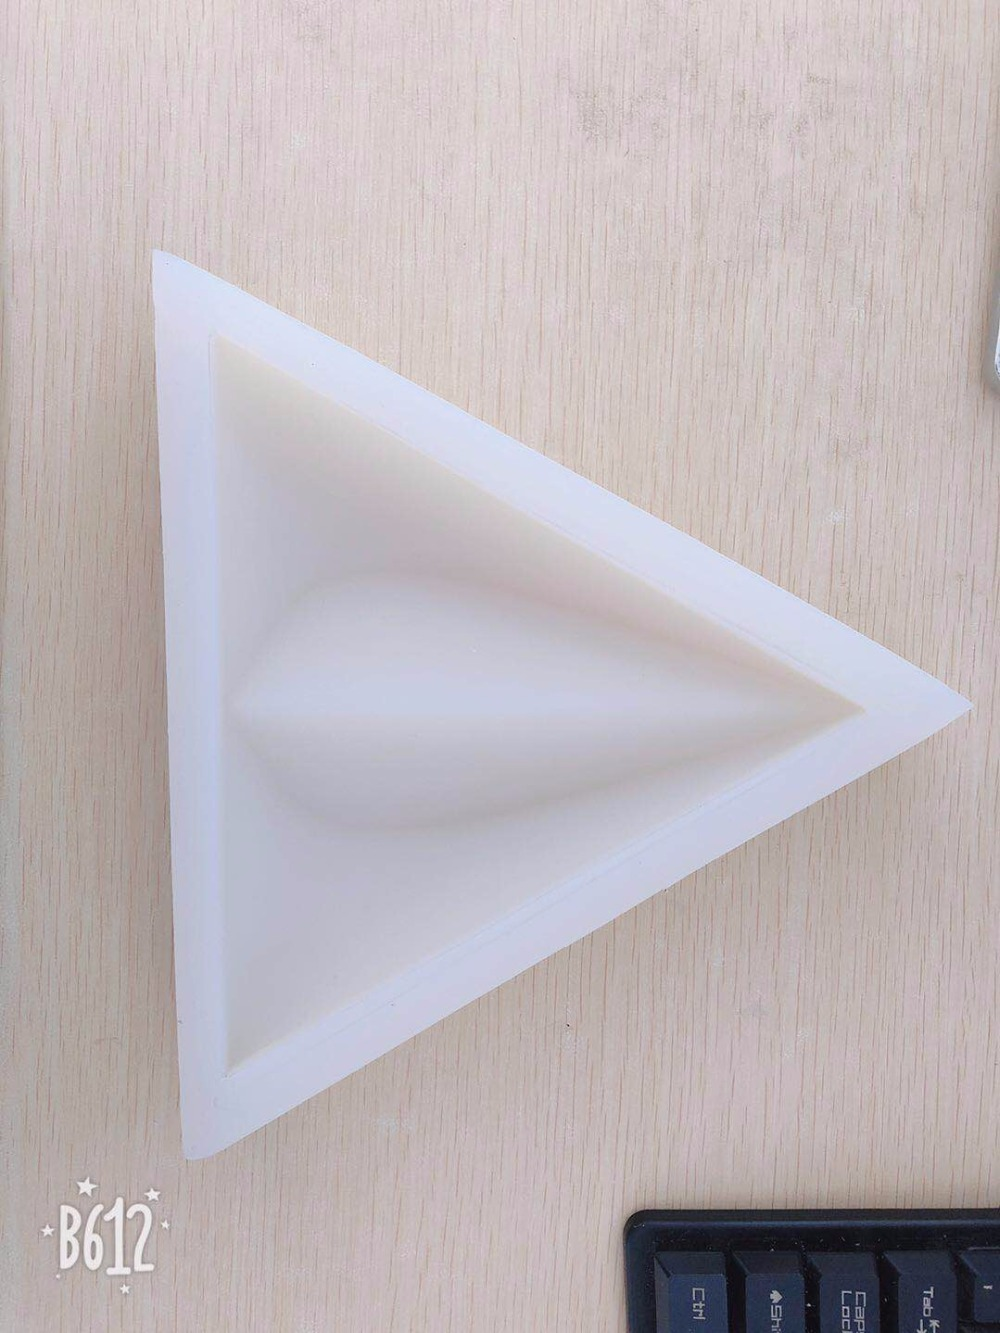 Triangular Form Cement Wall Brick Mold Concrete Tile Mold Simple Design Wall Decoration